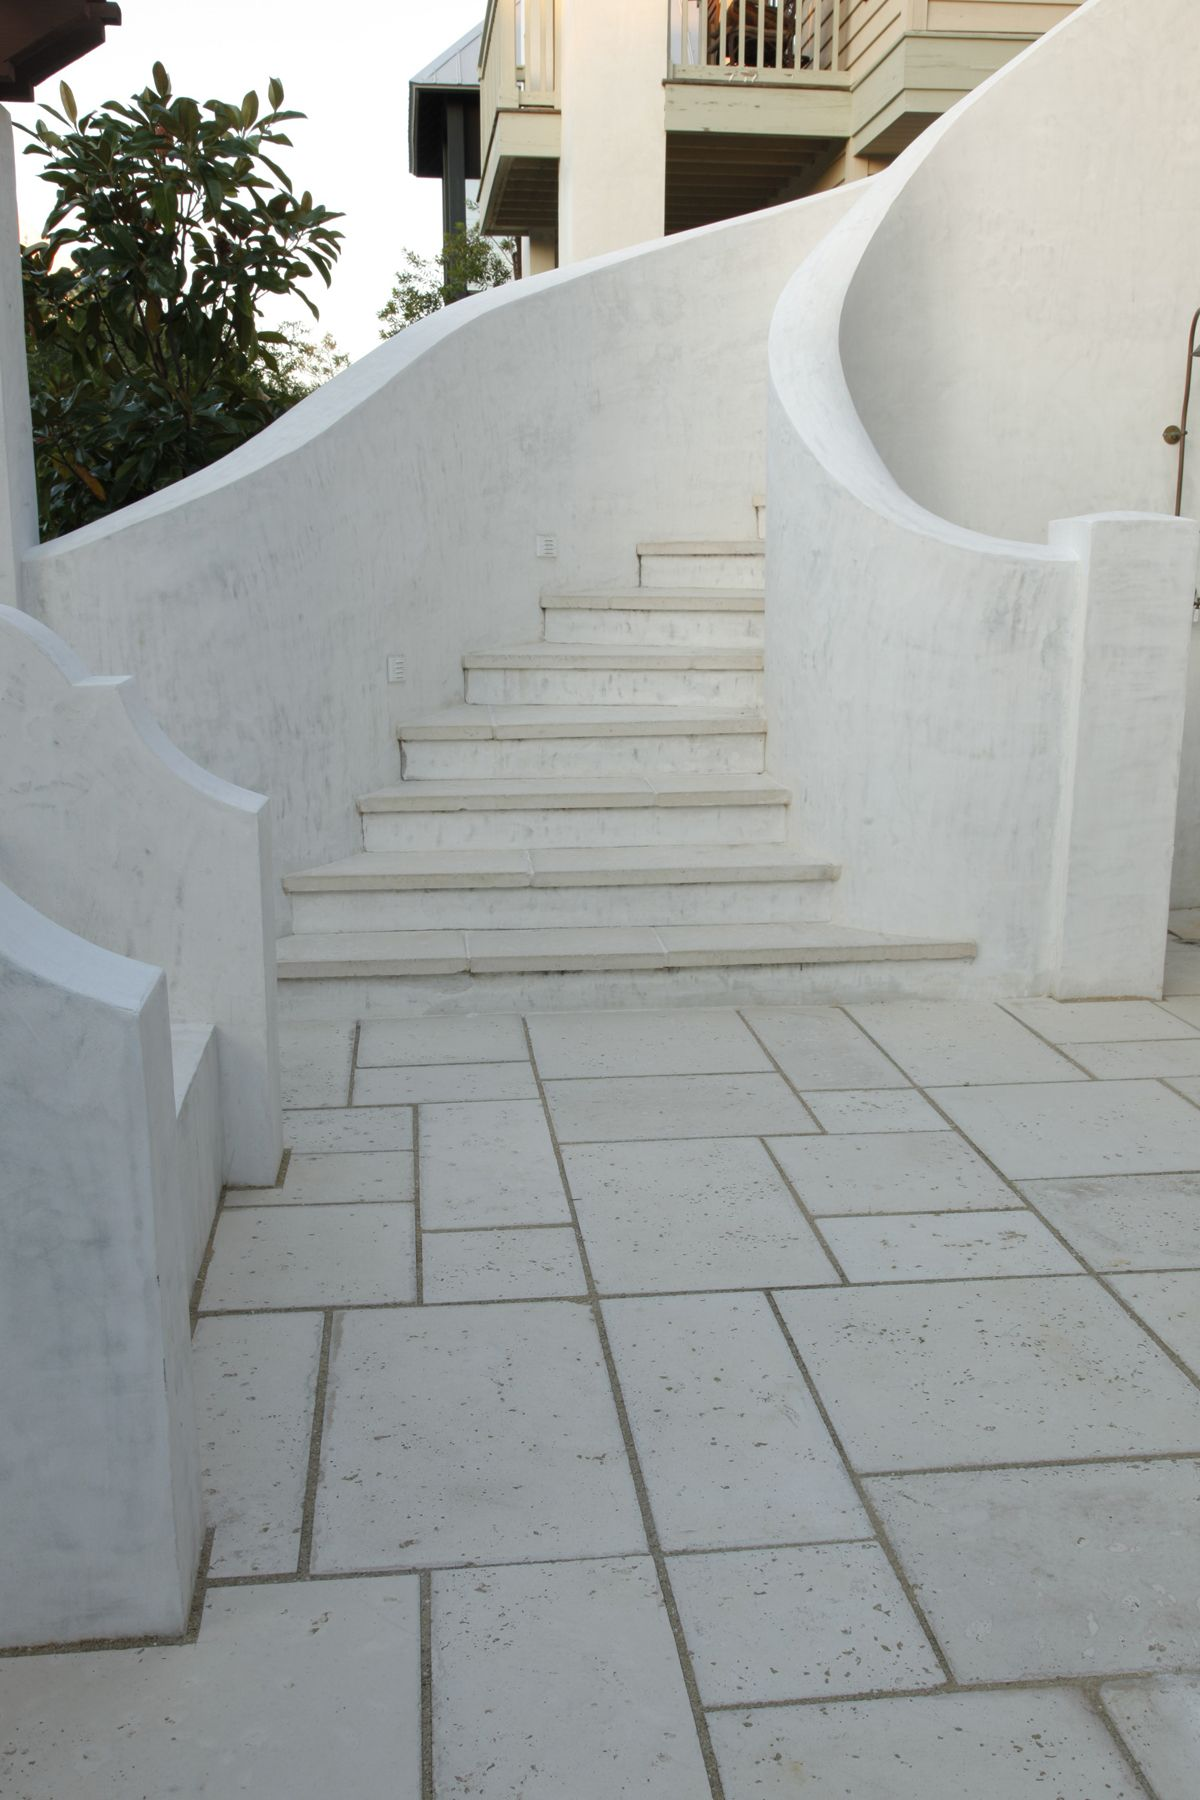 Peacock Pavers Patio Stairs Paver Patio Peacock Pavers